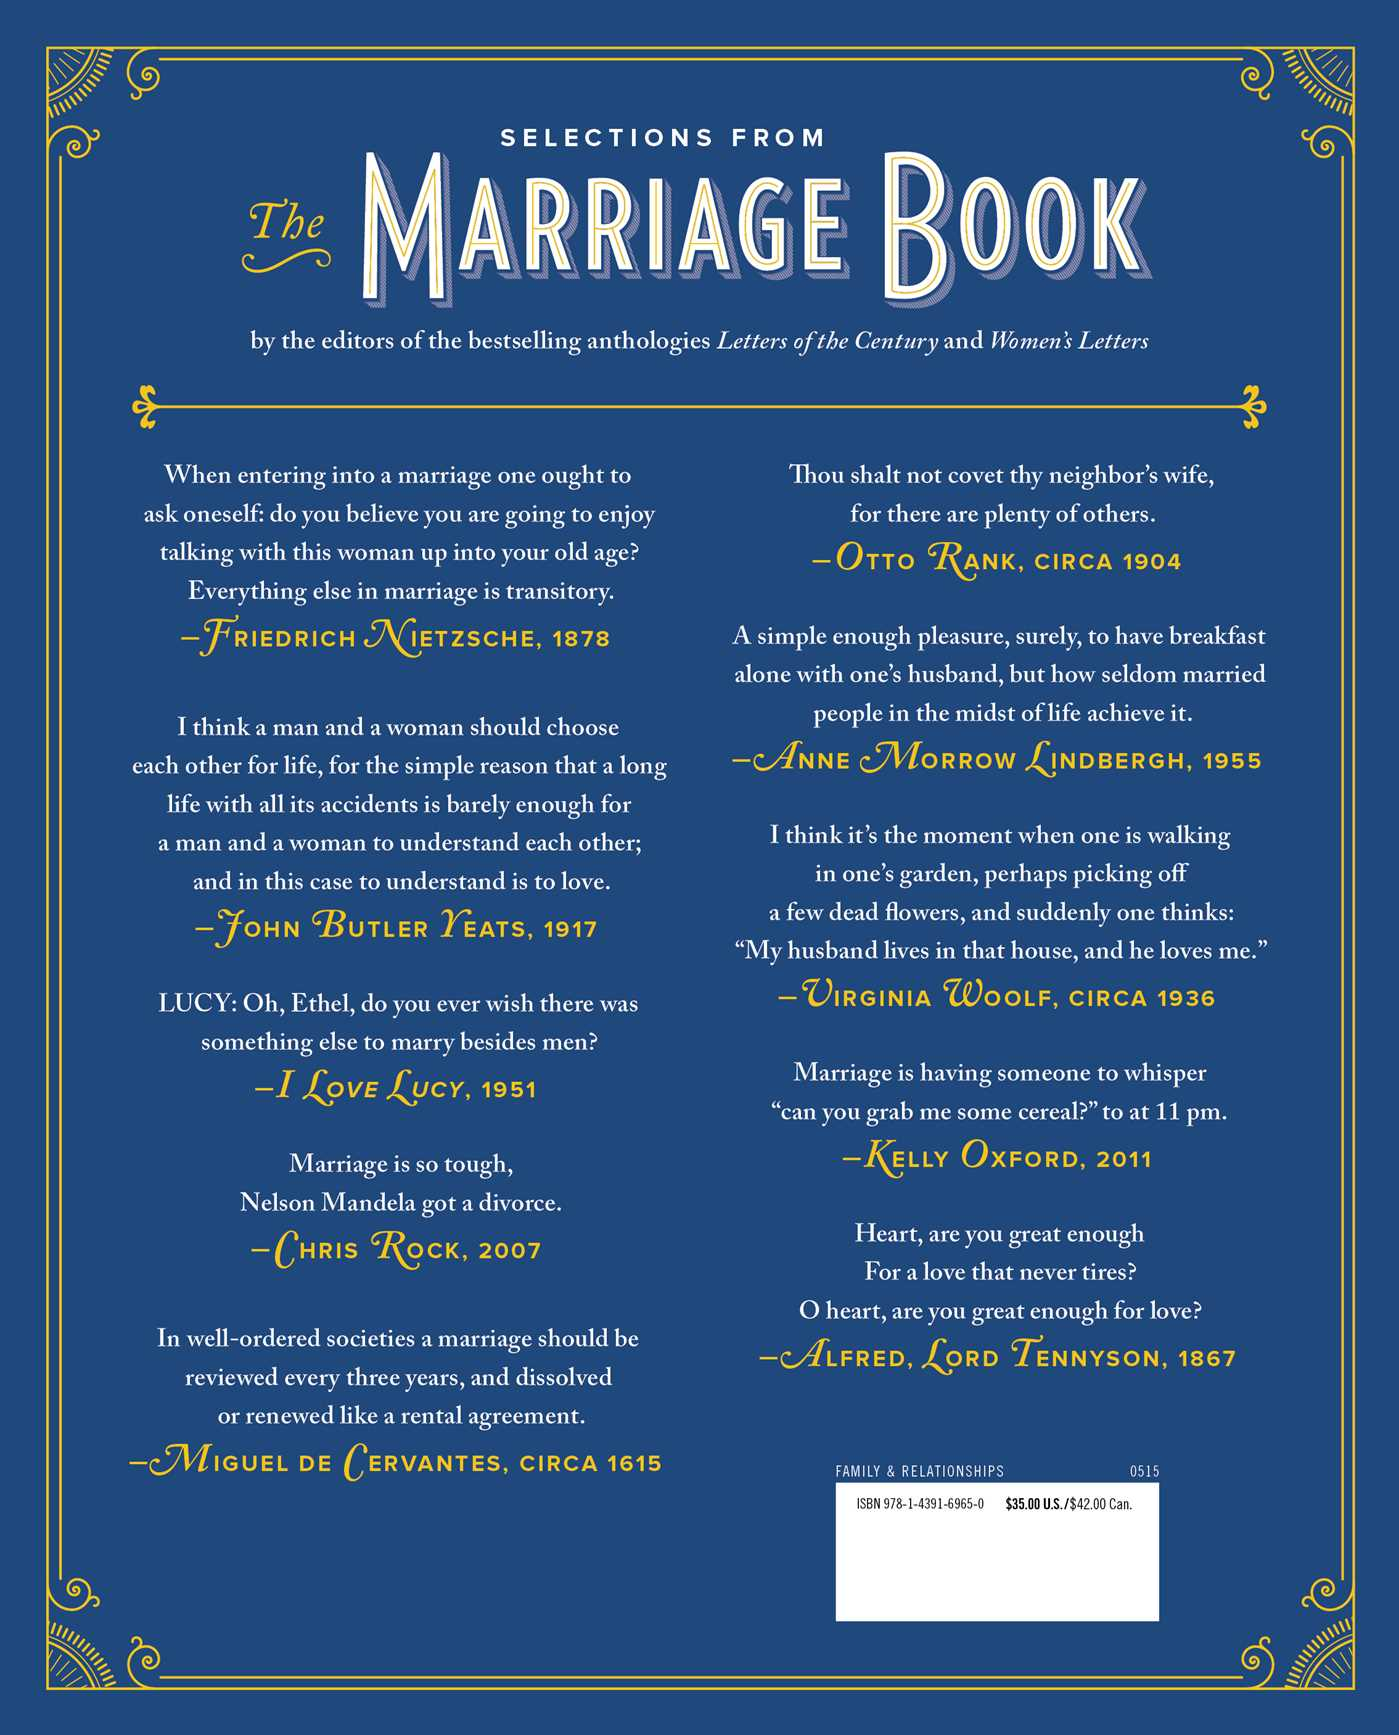 The Marriage Book Book By Lisa Grunwald Stephen Adler Official